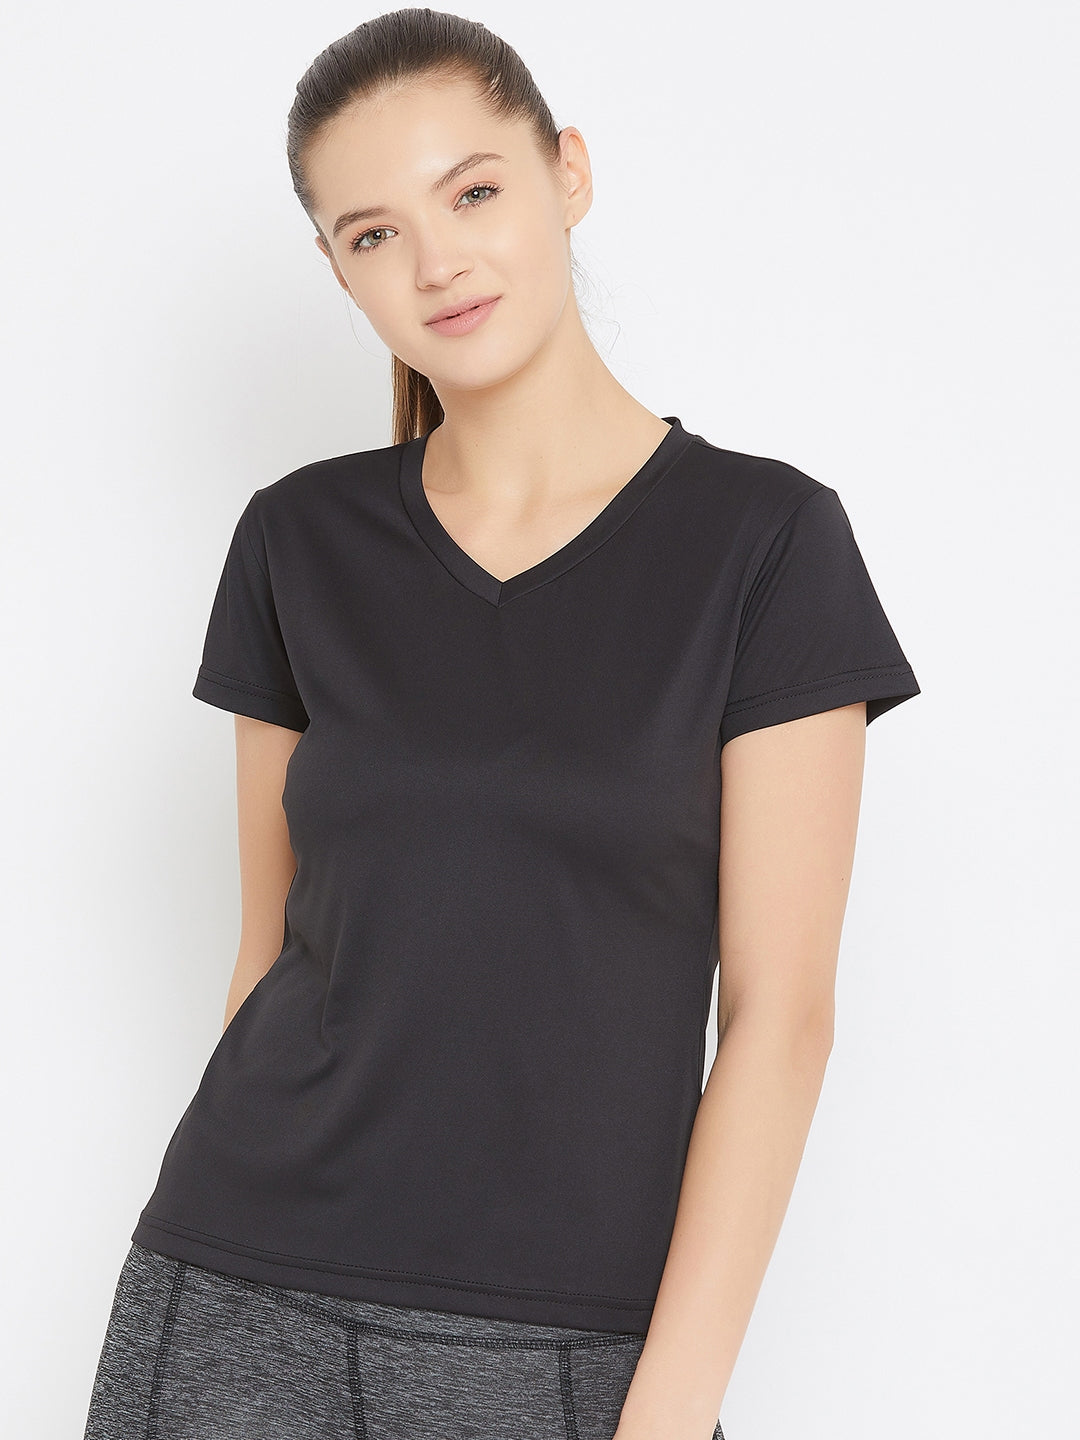 JUMP USA Women Black Active Wear V- Neck T-shirt